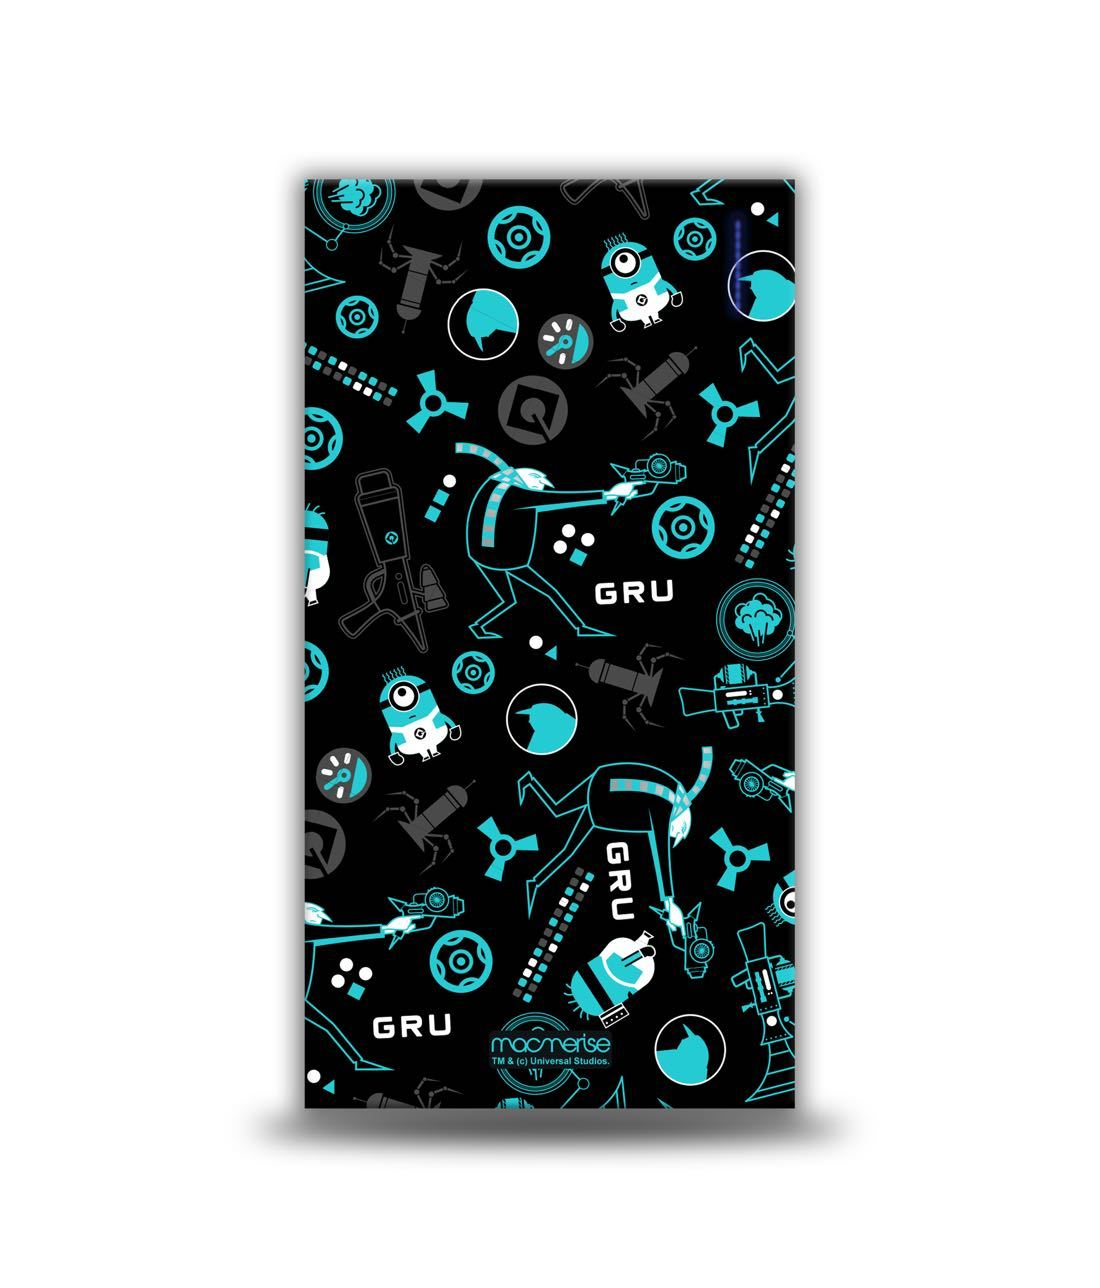 Minions Gru Mania Teal 4000 MAH Power Bank by Macmerise